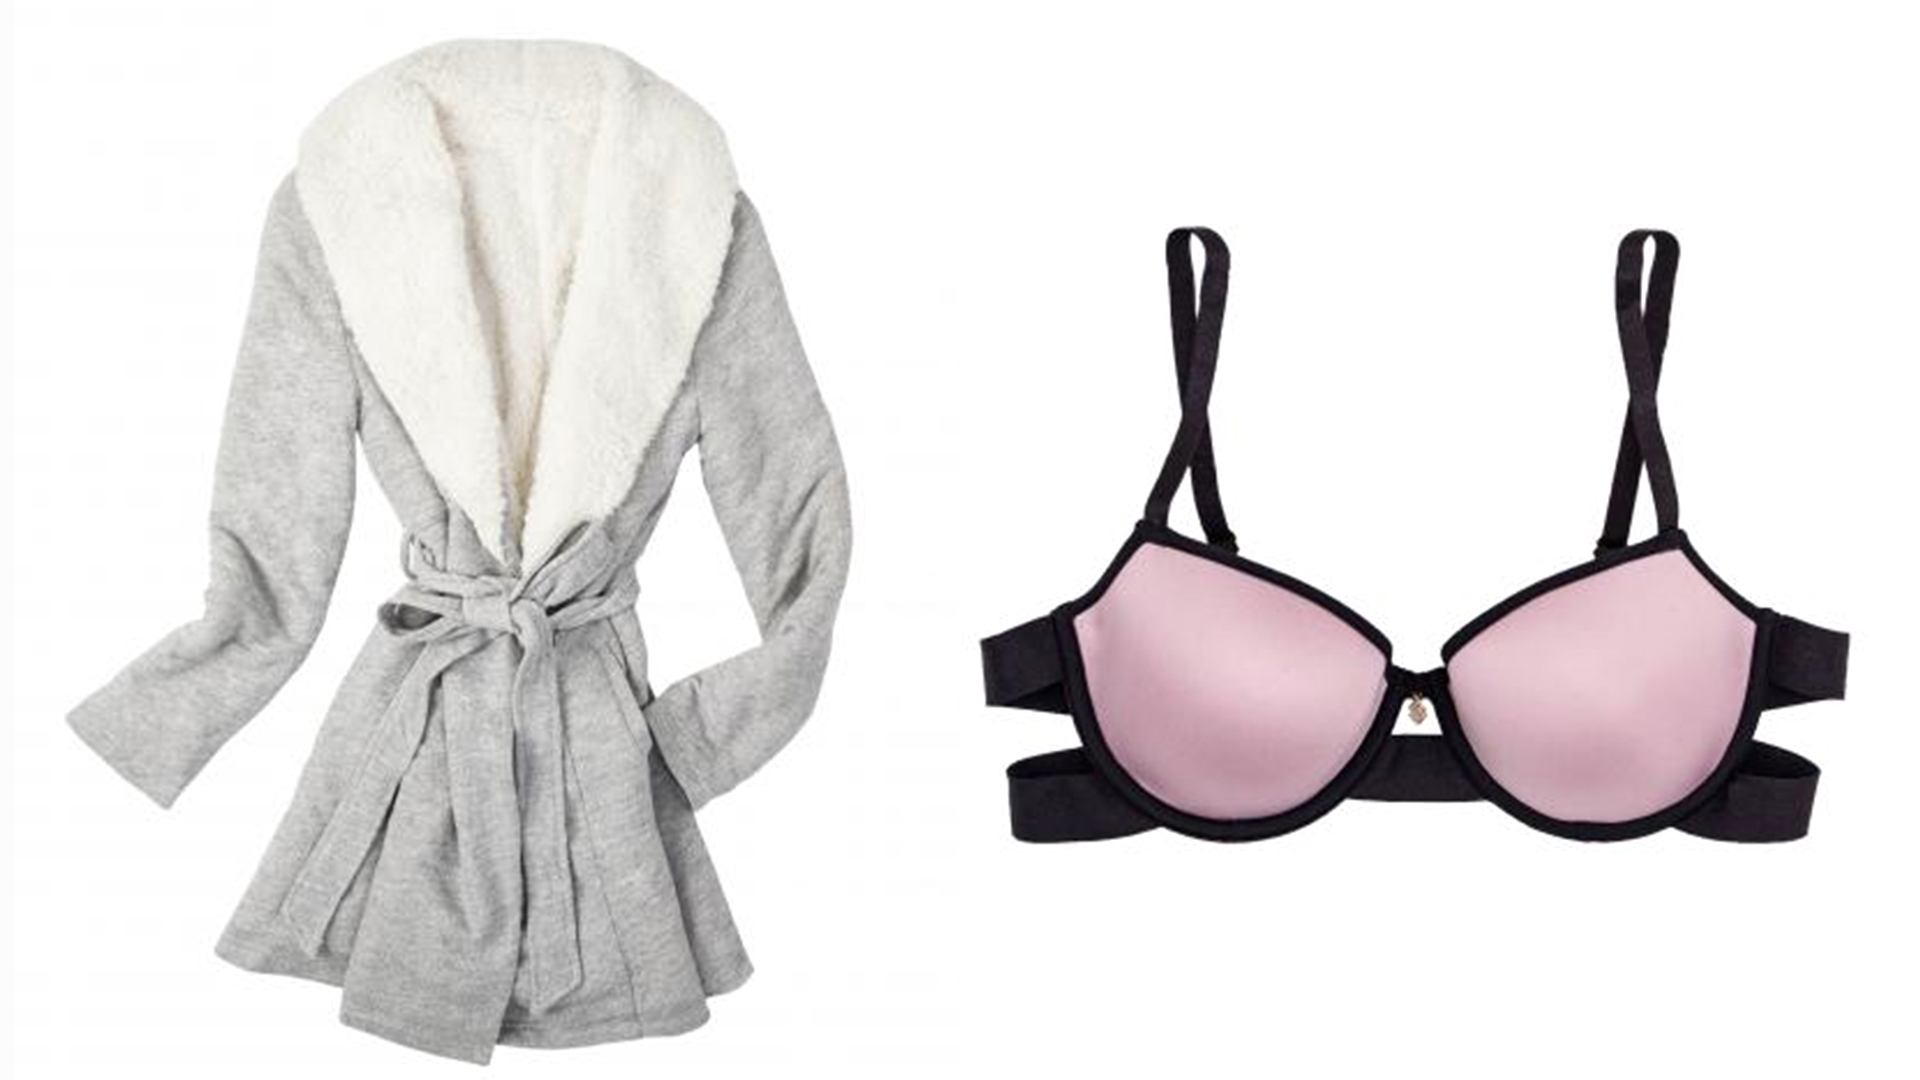 The perfect bra and undies: How to boost your confidence ...